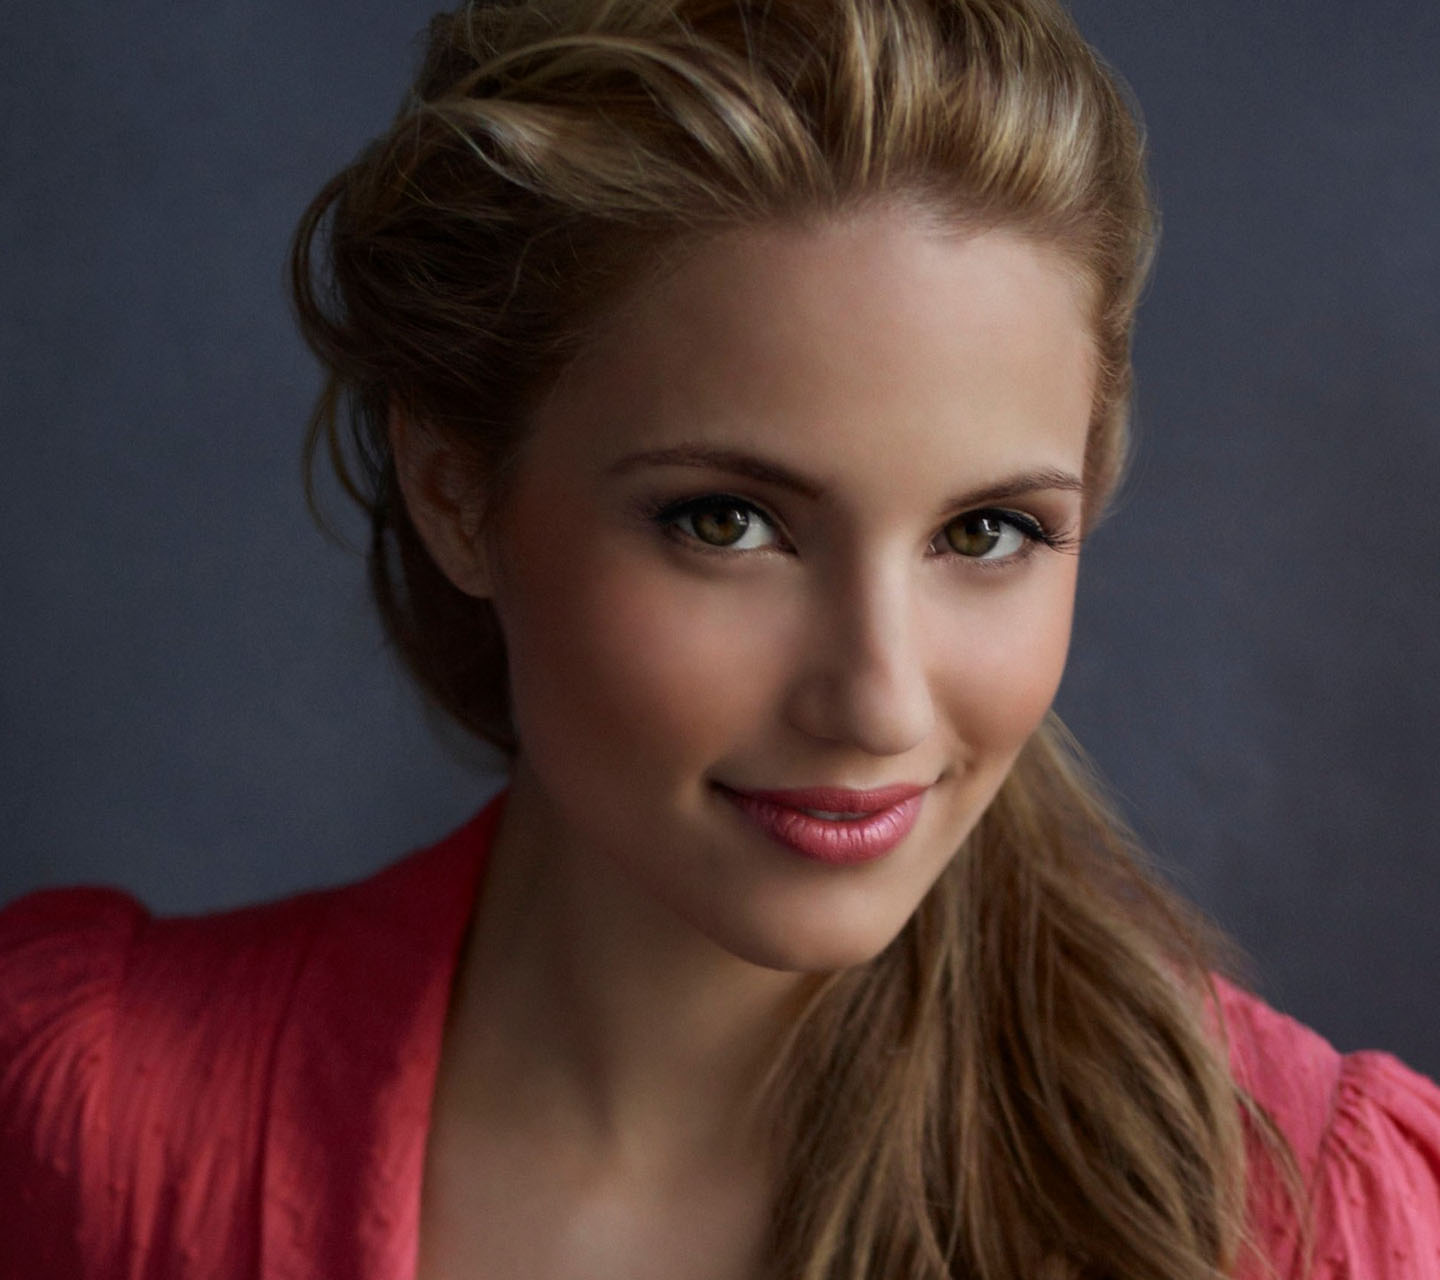 dianna agron desktop wallpapers - Dianna Agron Wallpapers HD Wallpapers Cool